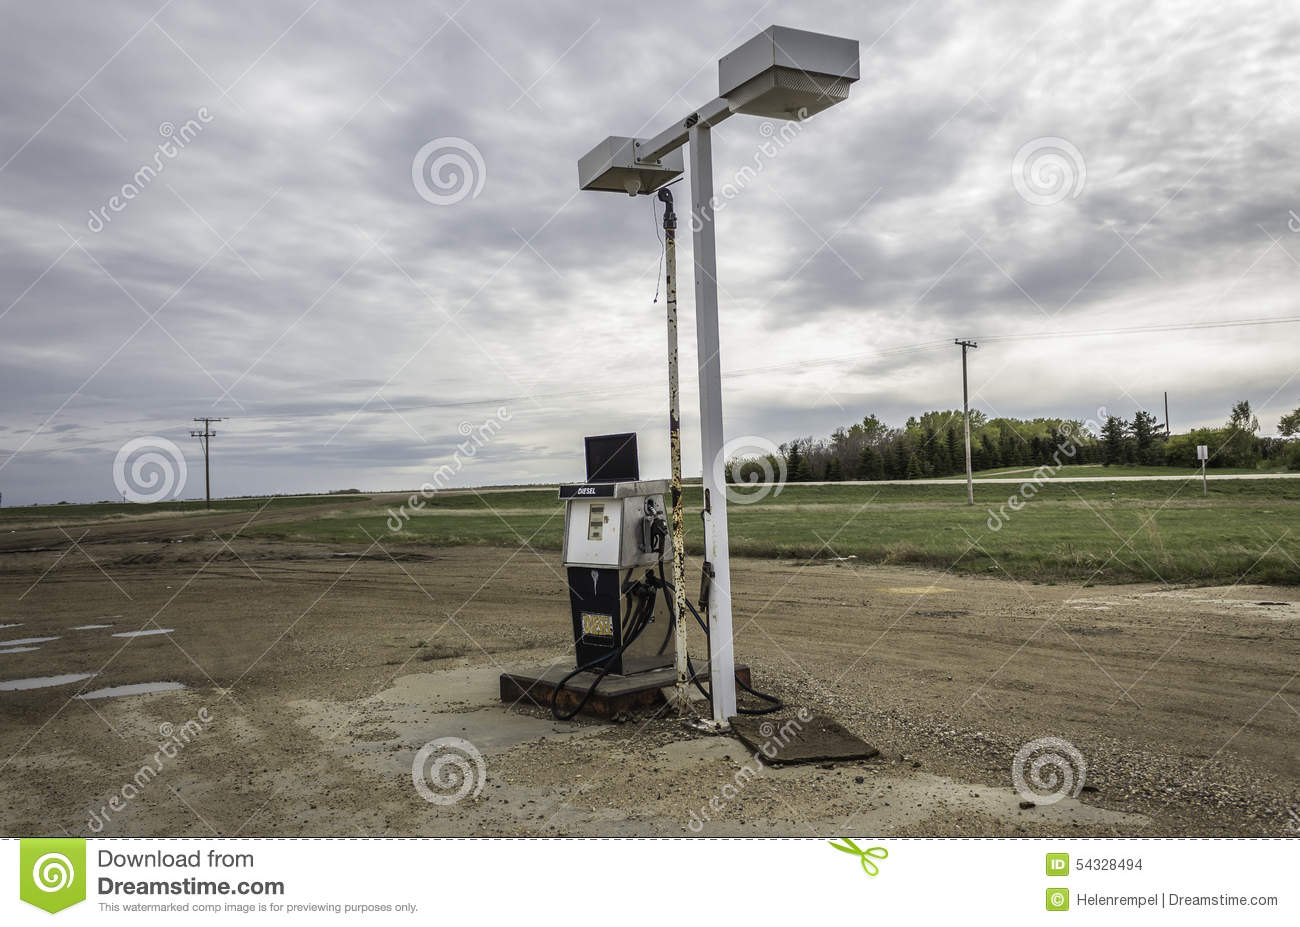 Royalty-Free Stock Photo. Download Old Gas ... & Old Gas Pump Sitting Under Broken Light Stand. Stock Photo - Image ... azcodes.com